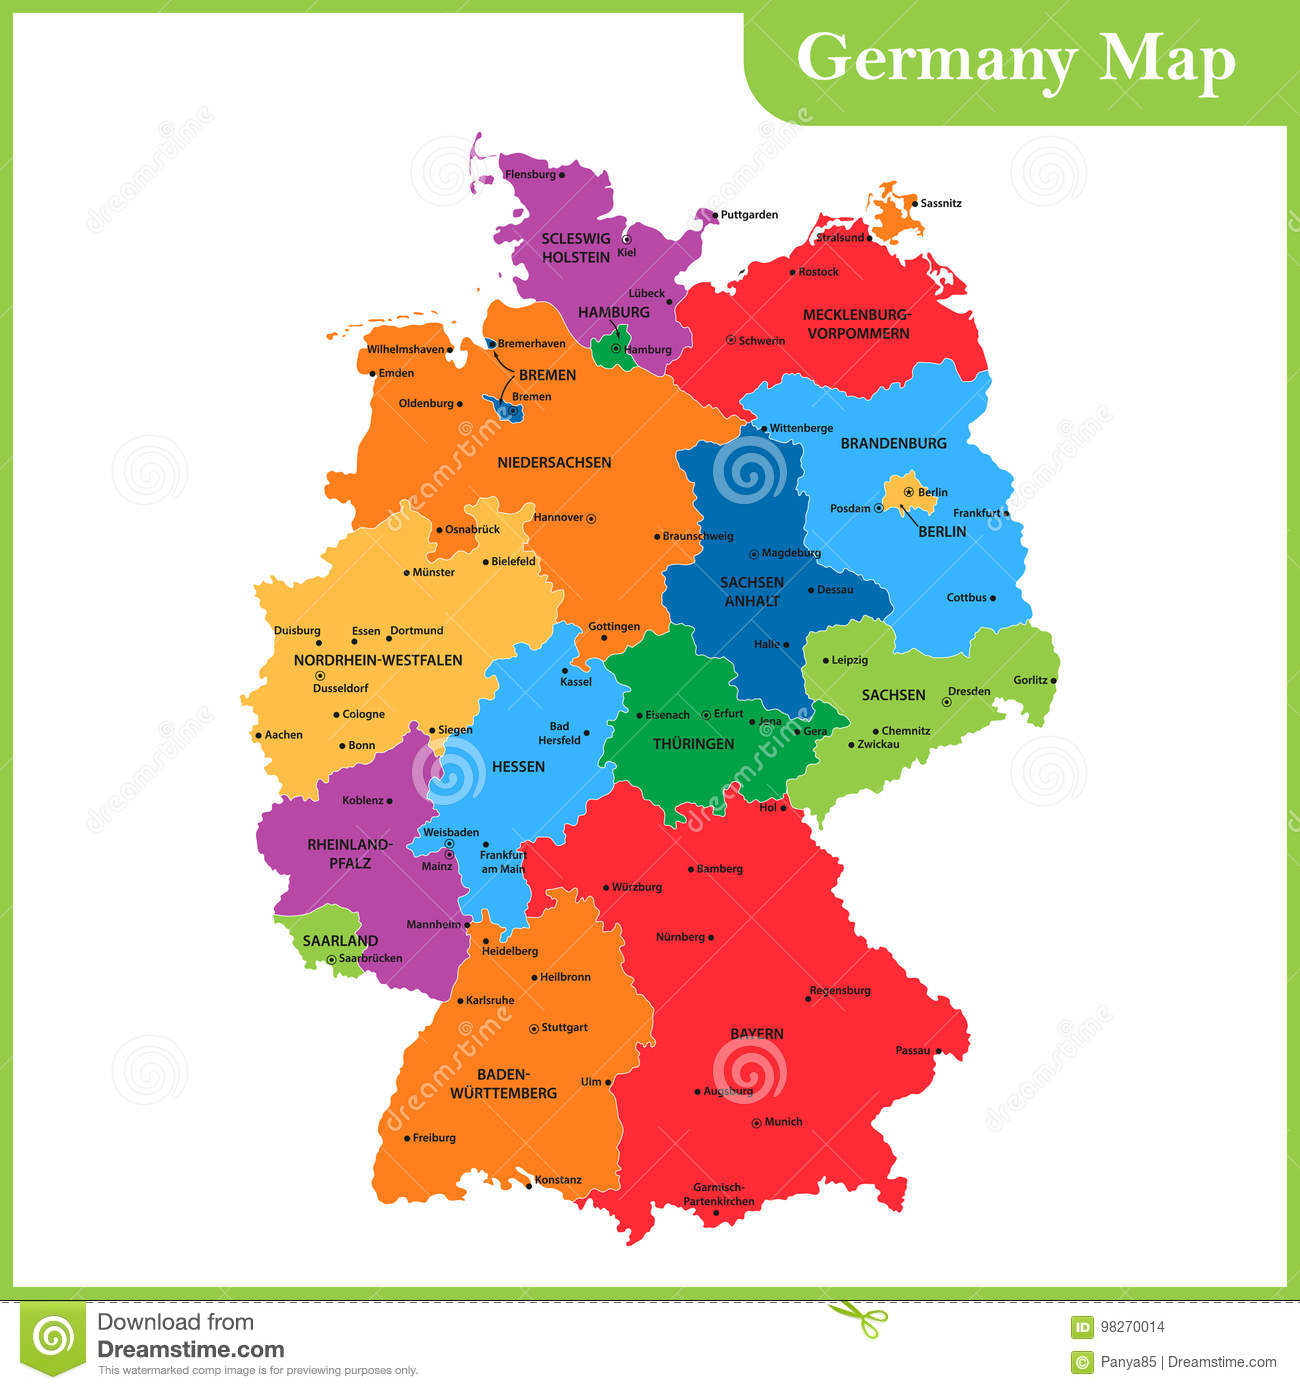 Karlsruhe German Map Of States on map of rastatt, map of münster, map of monchengladbach, map of saarland, map of basel, map of osterholz-scharmbeck, map of nurtingen, map of nordlingen, map of marburg, map of herzogenaurach, map of porto, map of hamm, map of bowbells, map of hindenburg, map of schwaben, map of bruchsal, map of oberpfalz, map of remagen, map of holzkirchen, map of cochem,